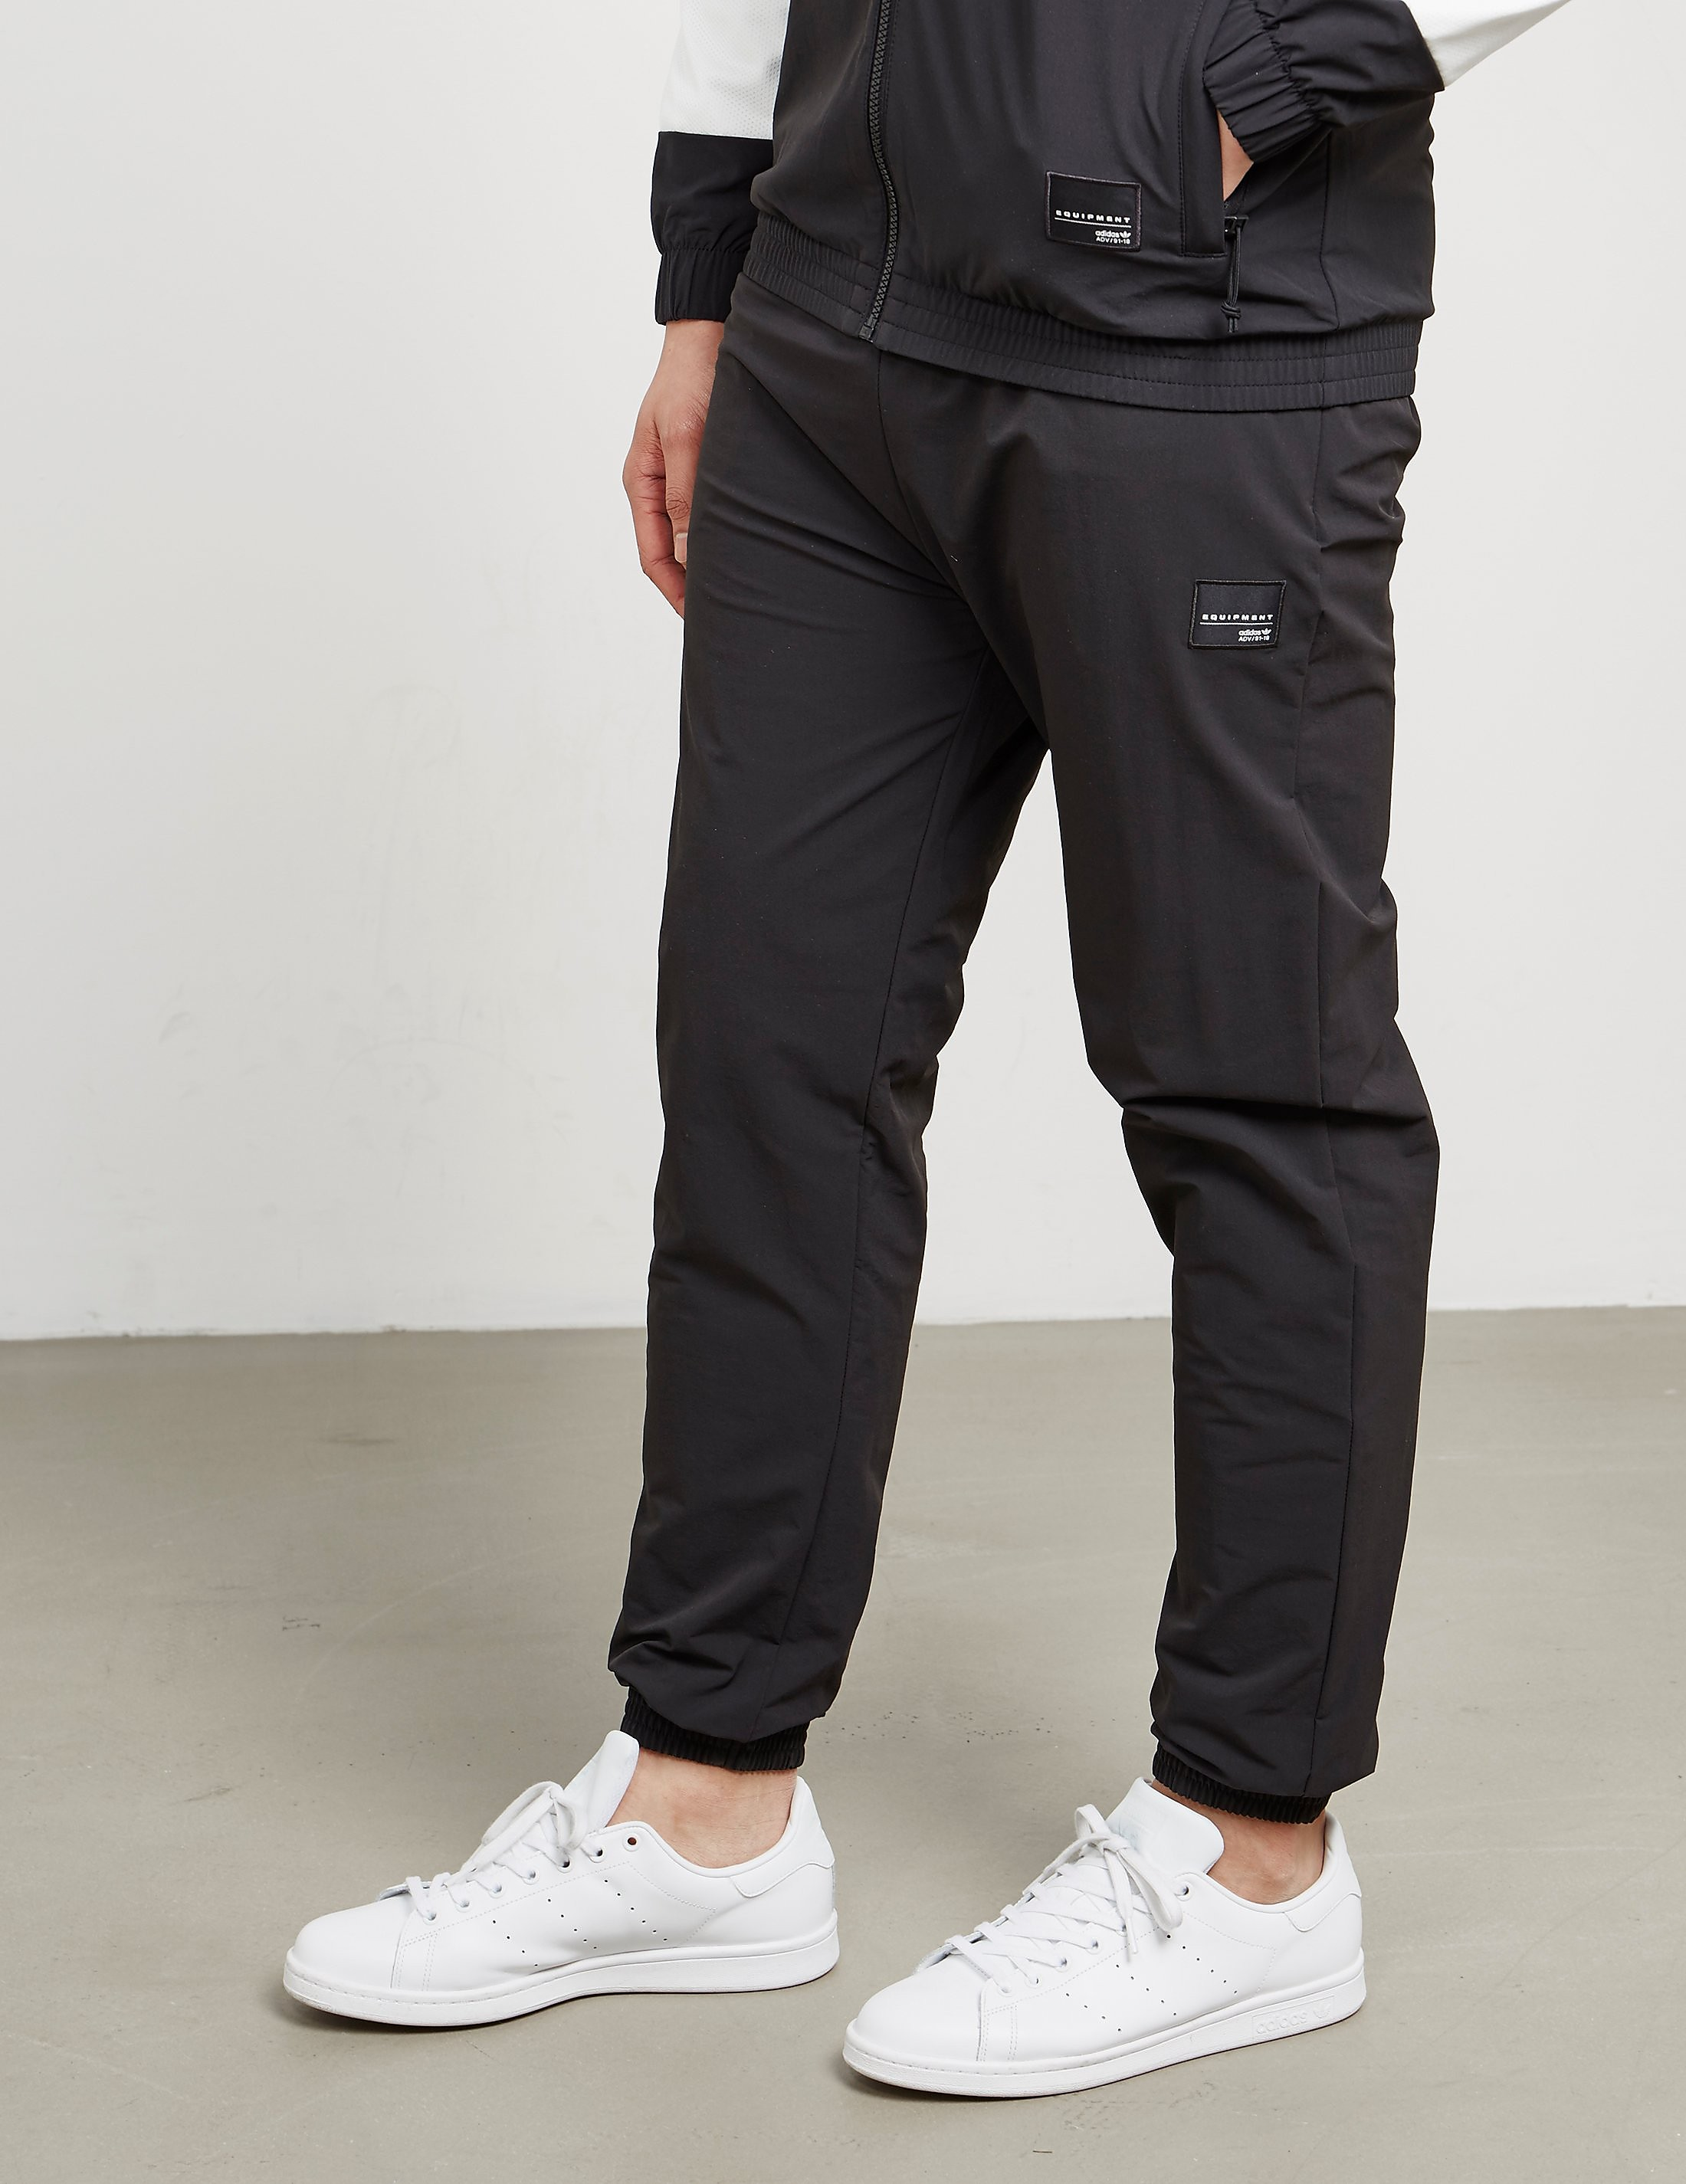 adidas Originals EQT Cuffed Track Pants